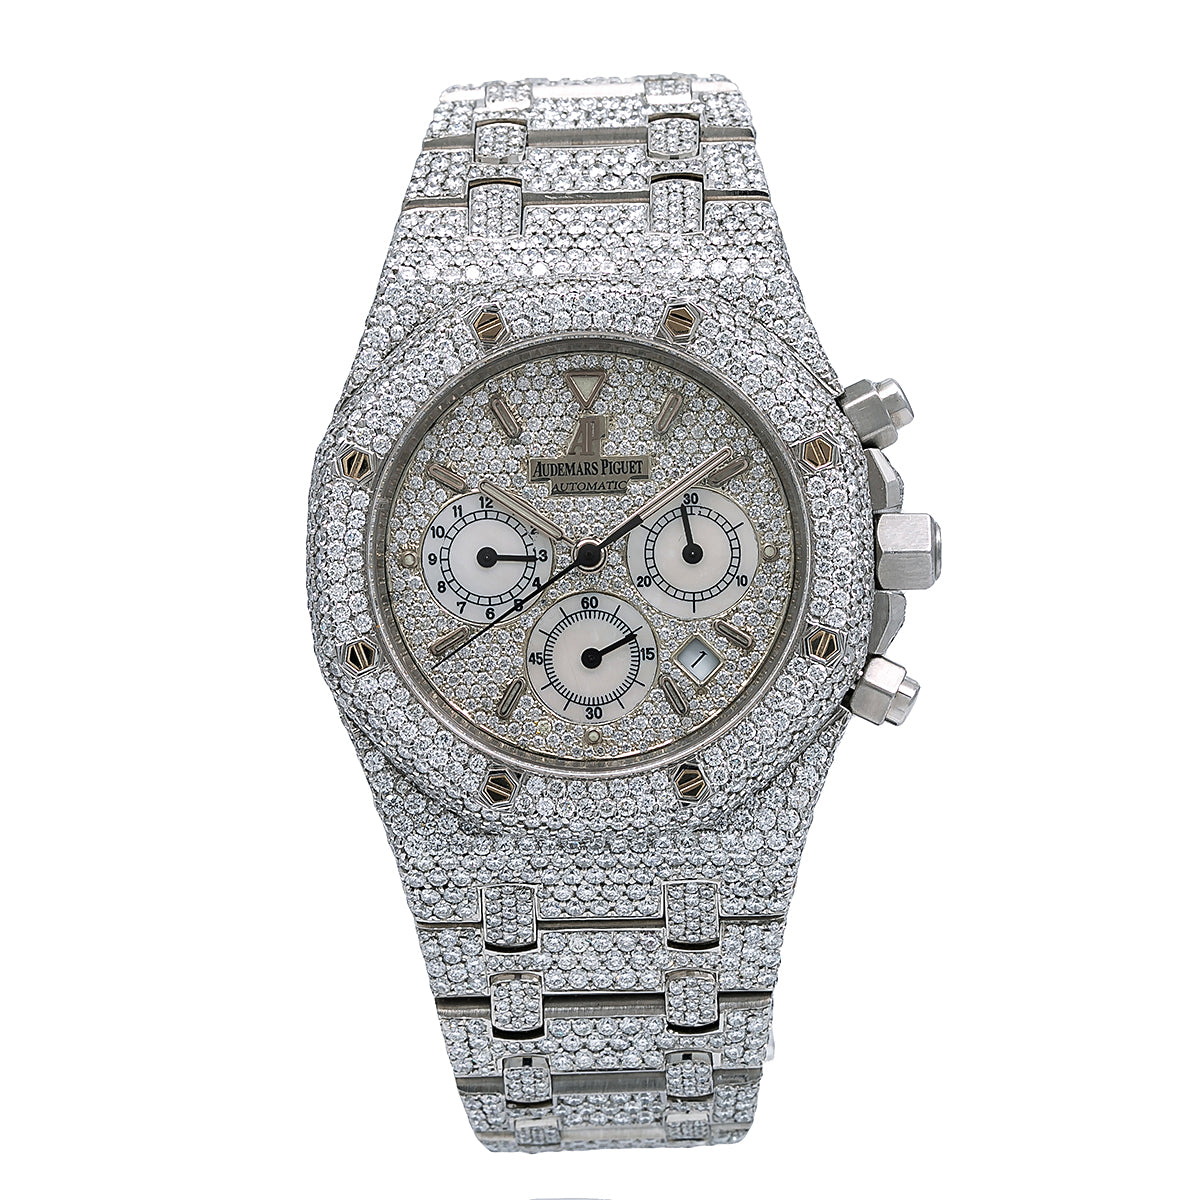 0e667b00d46 Audemars Piguet Royal Oak Chronograph 25860ST.OO.1110ST.05 39MM Silver -  OMI Jewelry